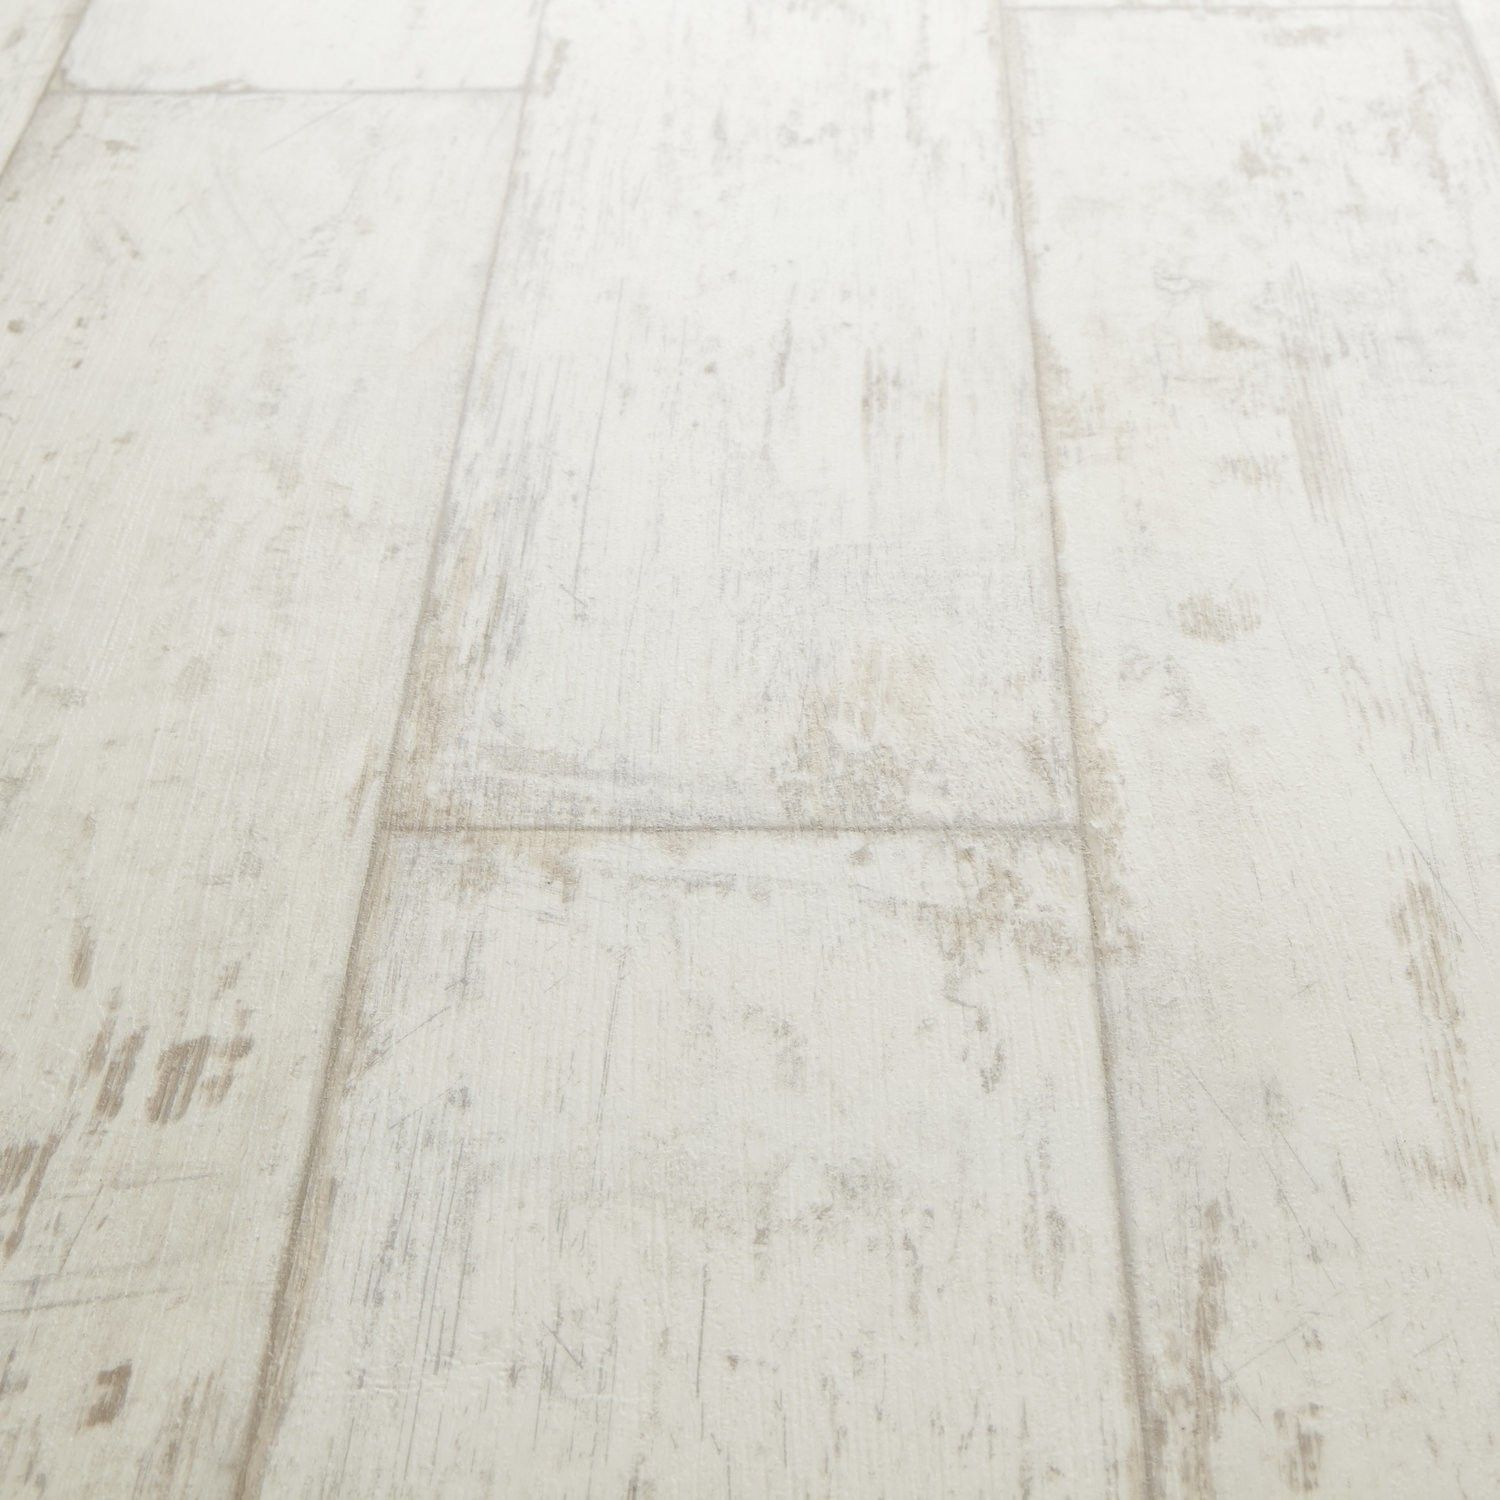 rhino step artwood bleach white wood effect vinyl flooring